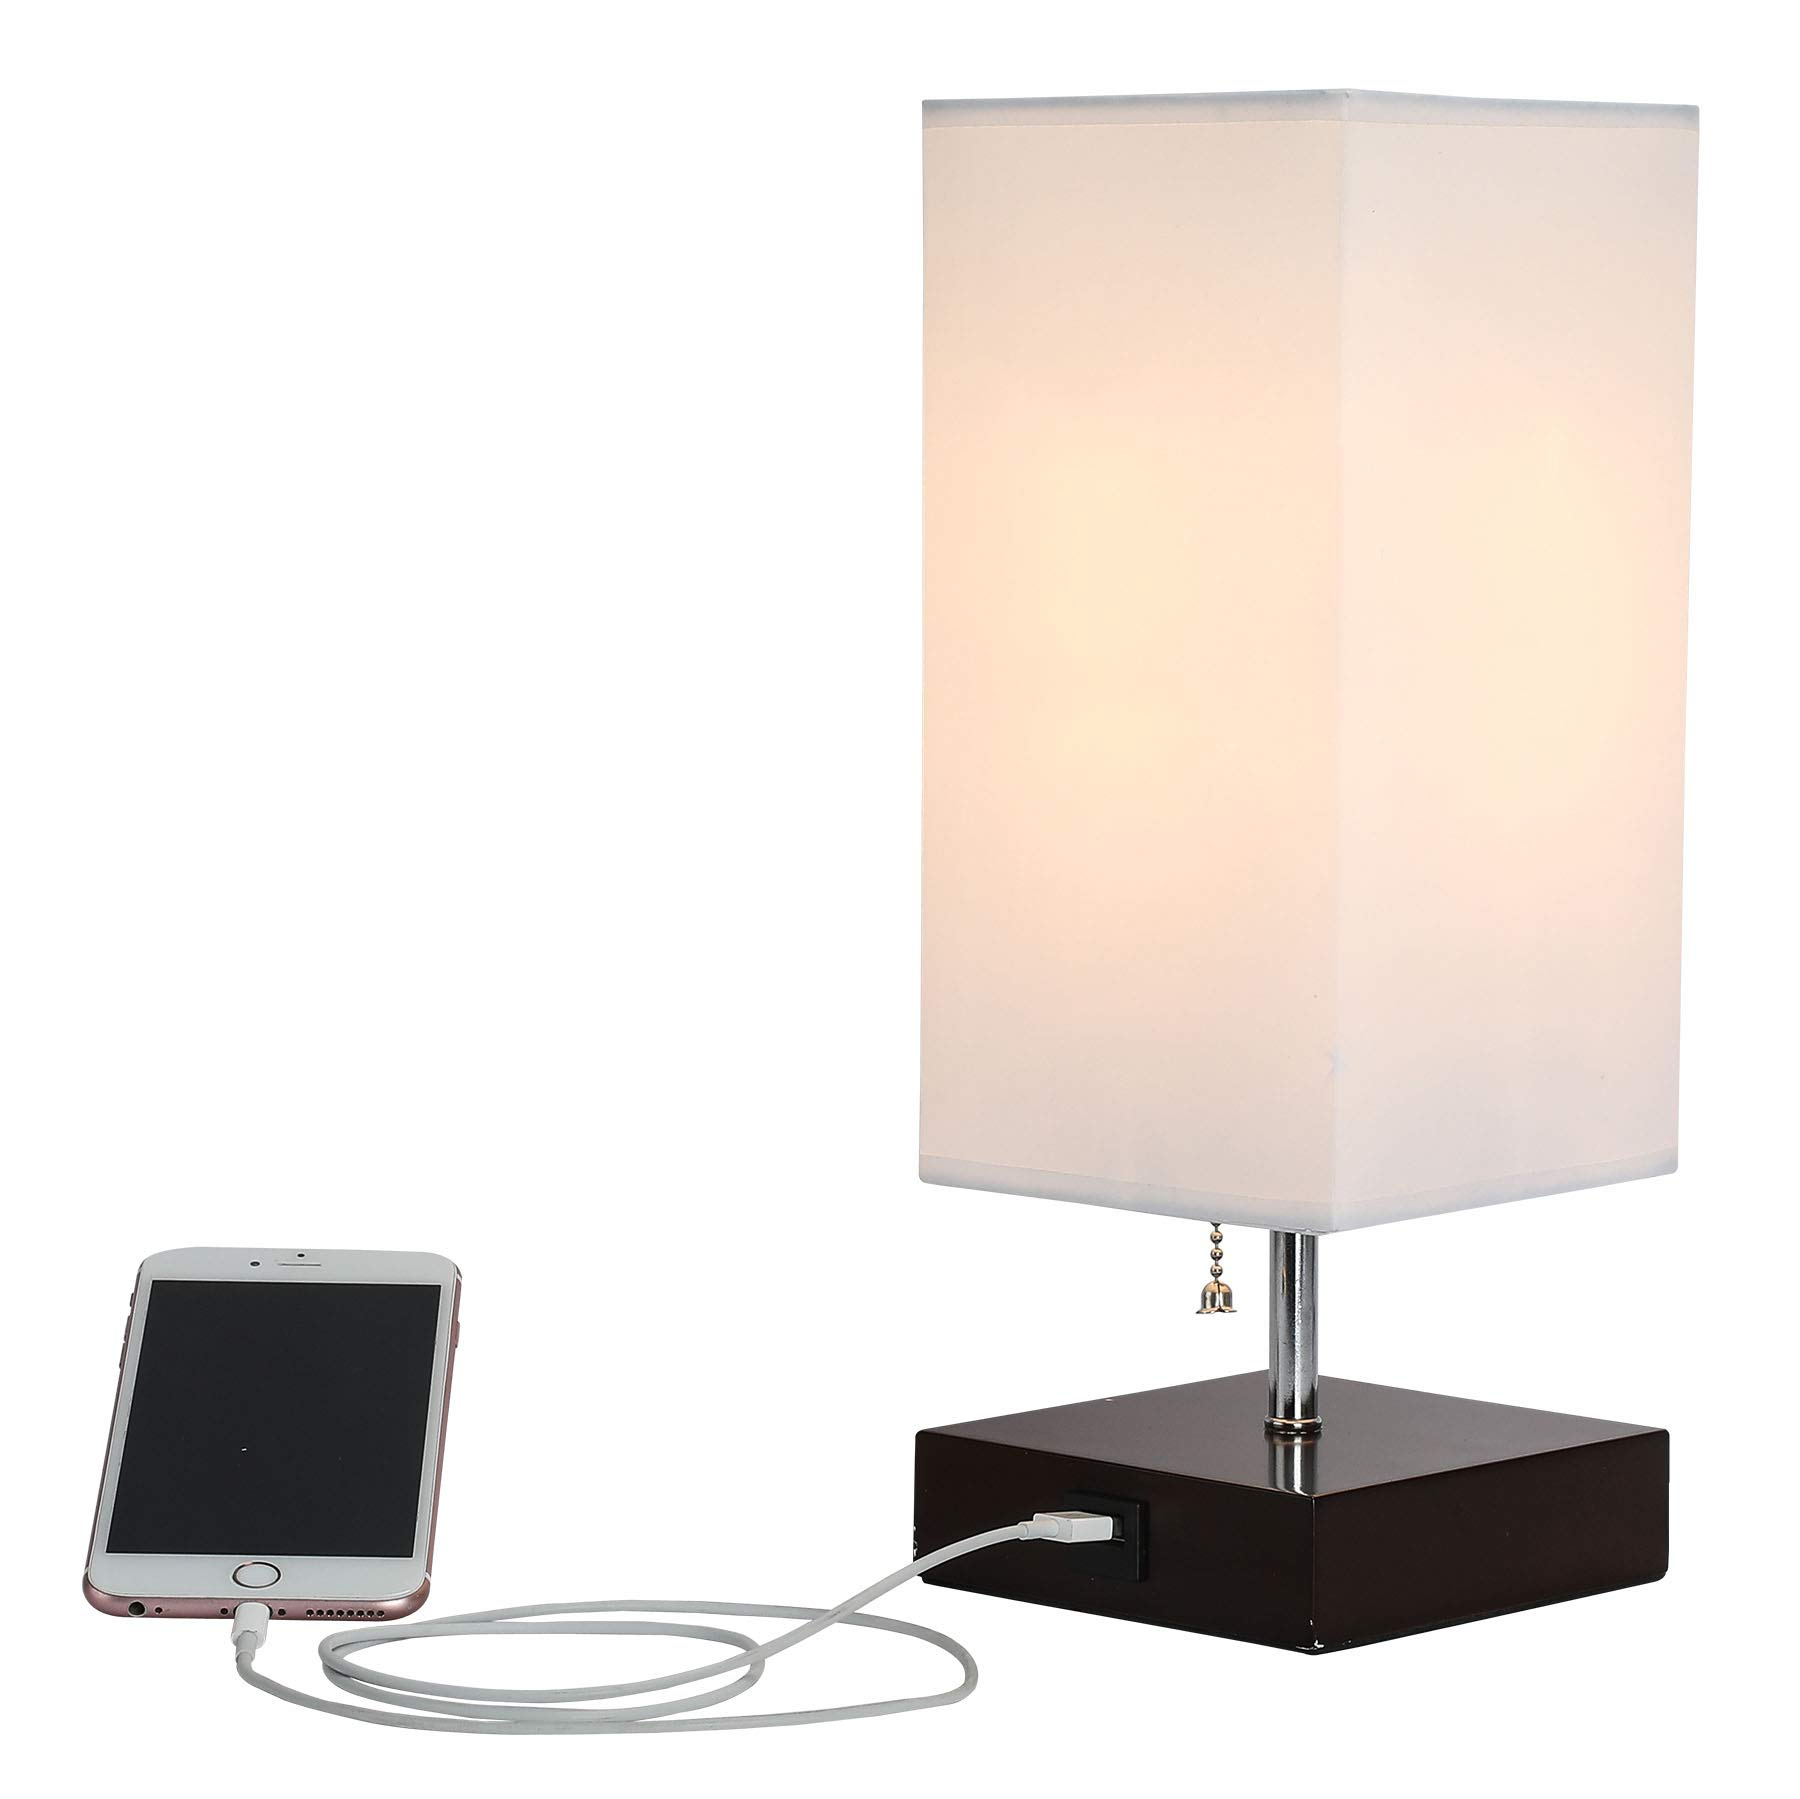 CO-Z Table Lamp with Solid Wood Base & USB Charger, Minimalist Bedside Lamp Fabric White Shade, 10'' Height for Desk Office Bedroom Nightstand (Bronze)